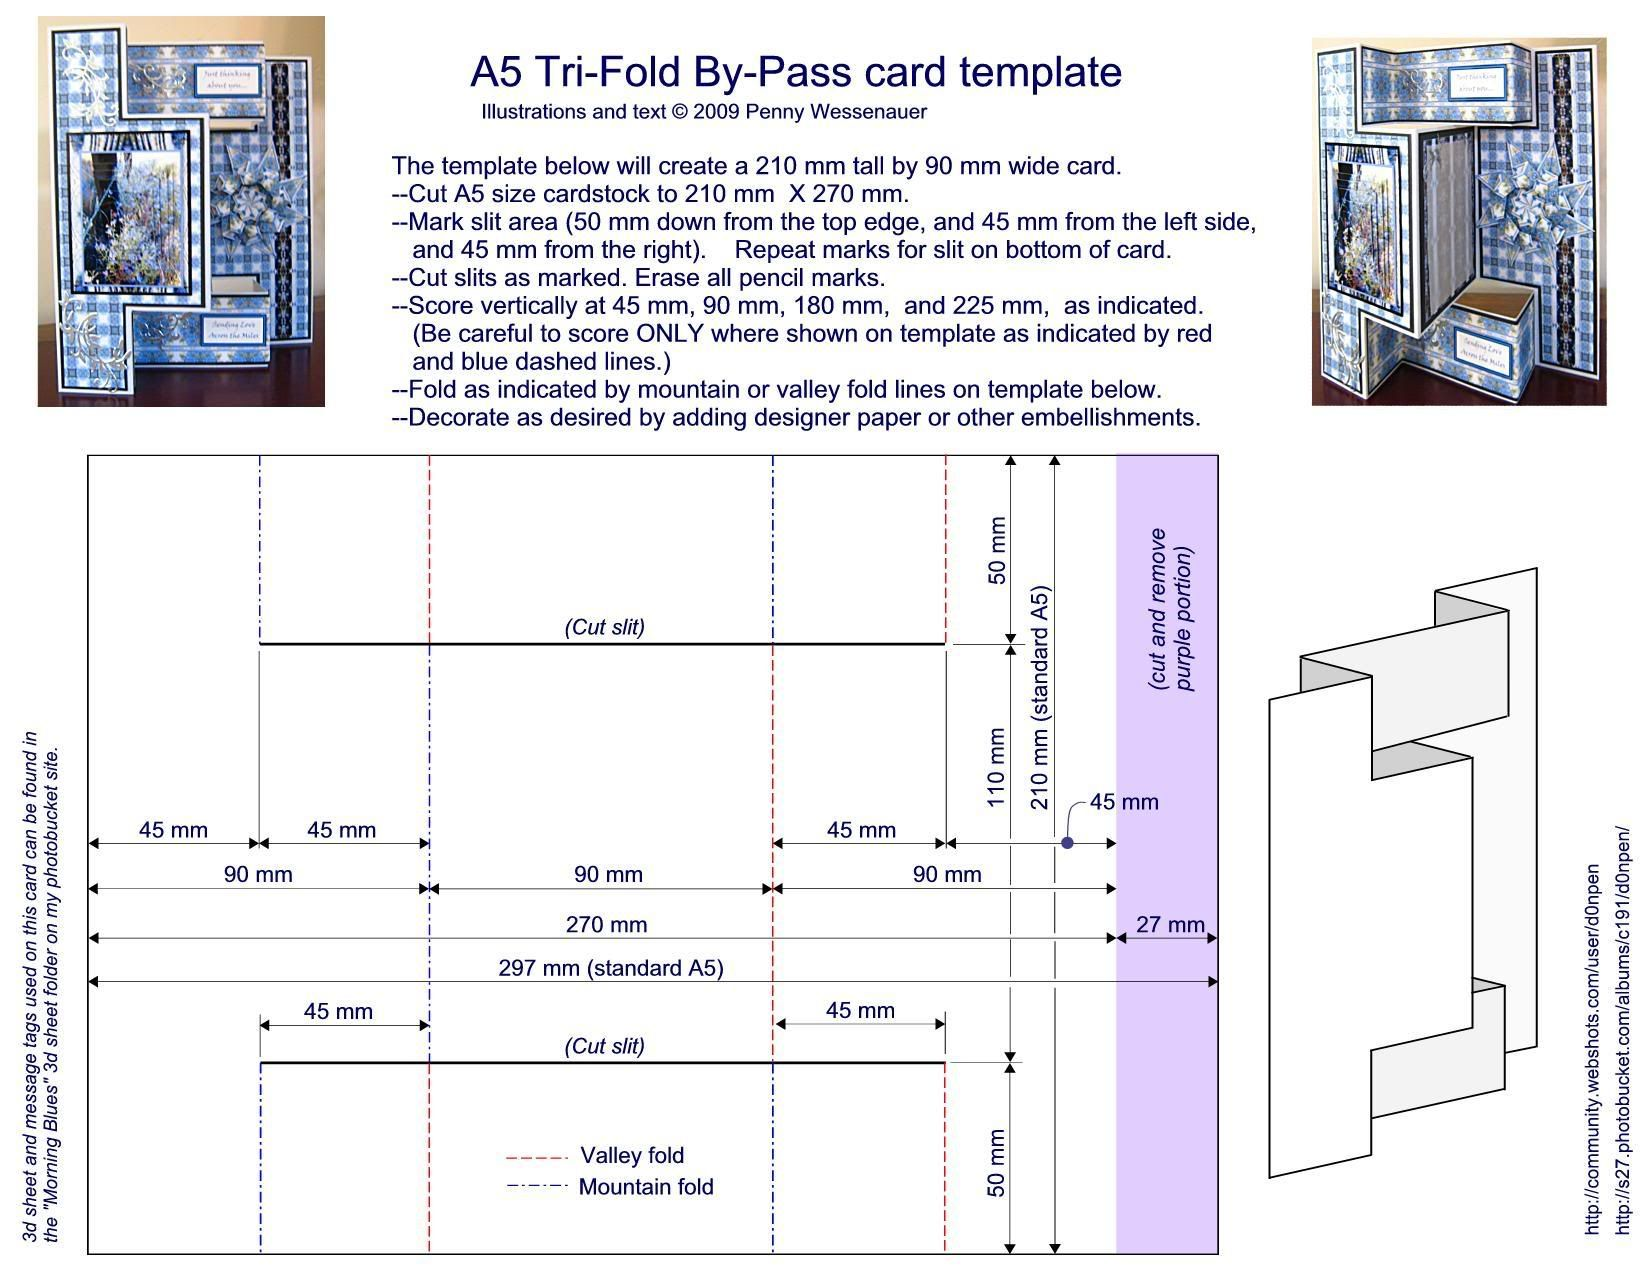 A-5 Tri-Fold By-Pass card template